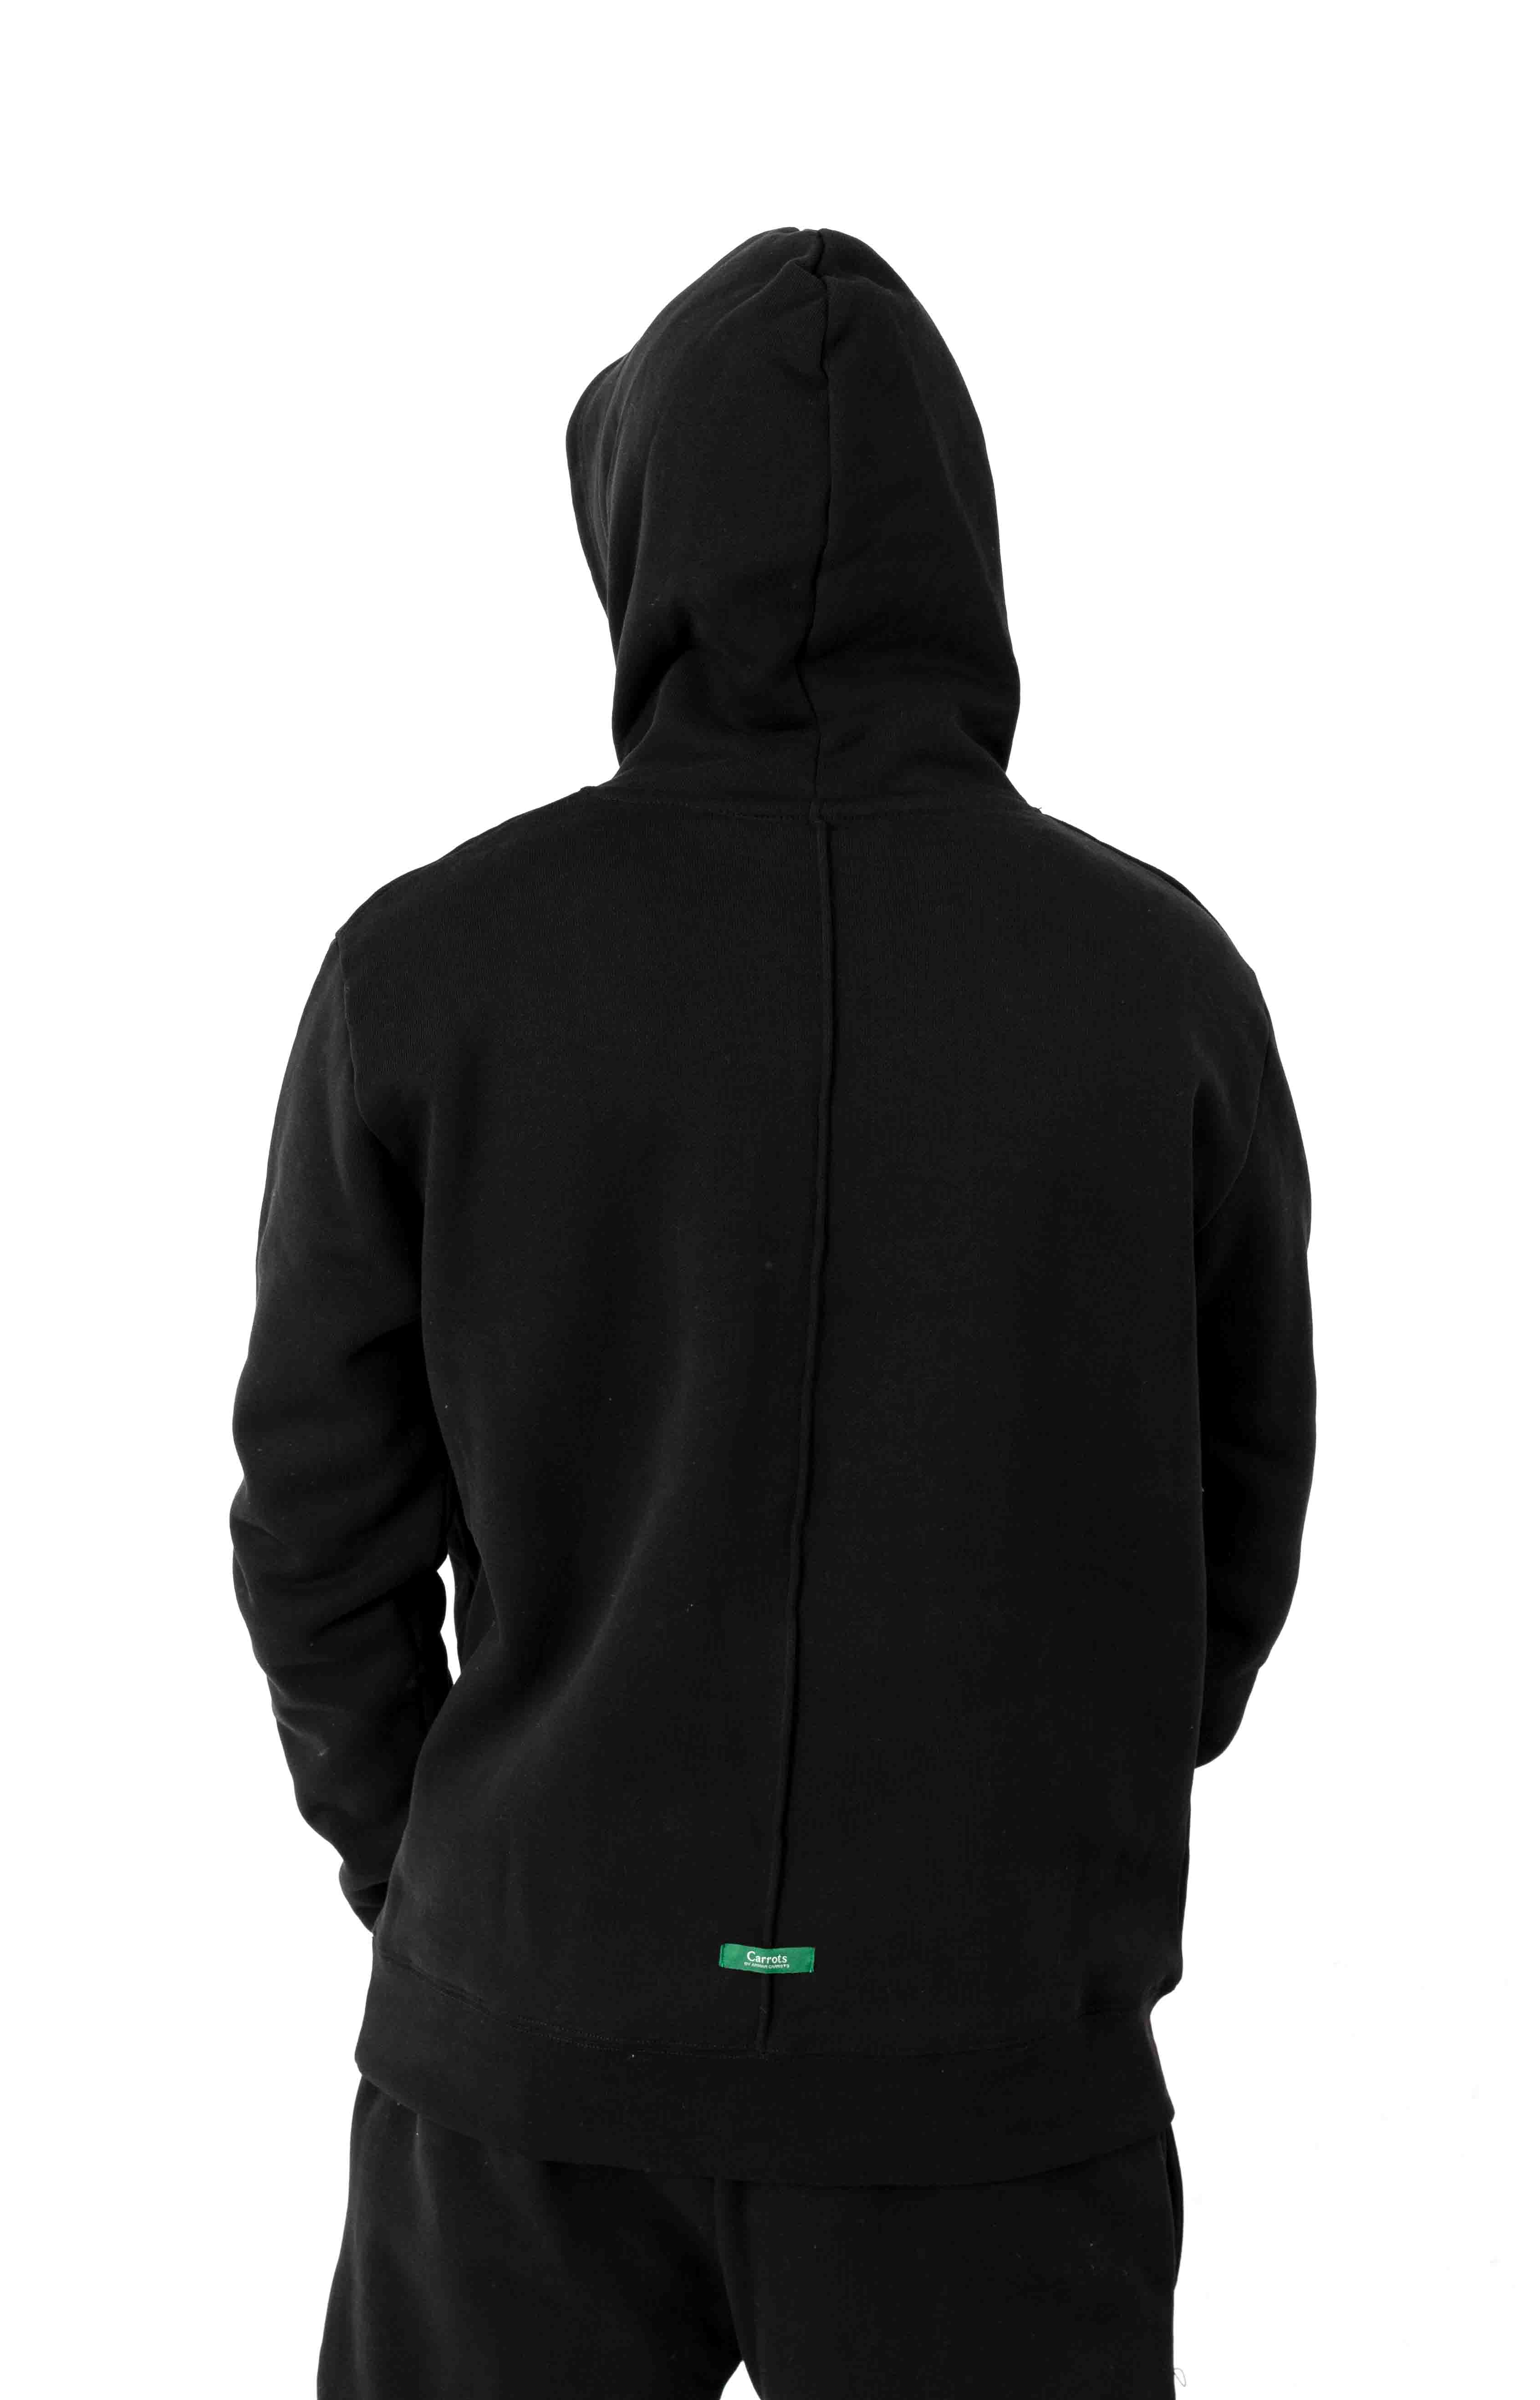 Signature Carrot Patch Pullover Hoodie - Black 3